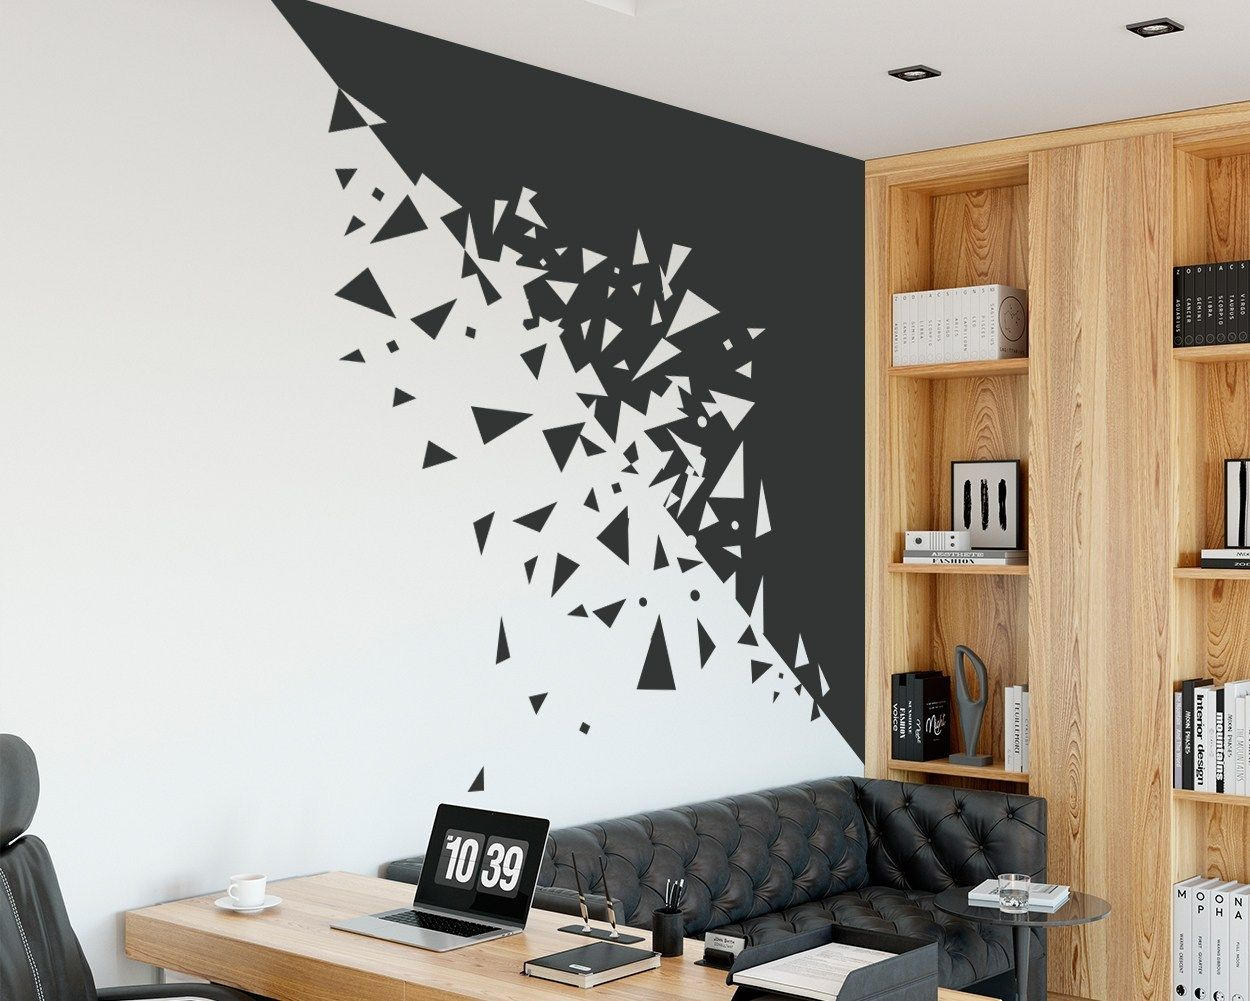 Abstract Fragmented Wall Decal Cheap wall decor